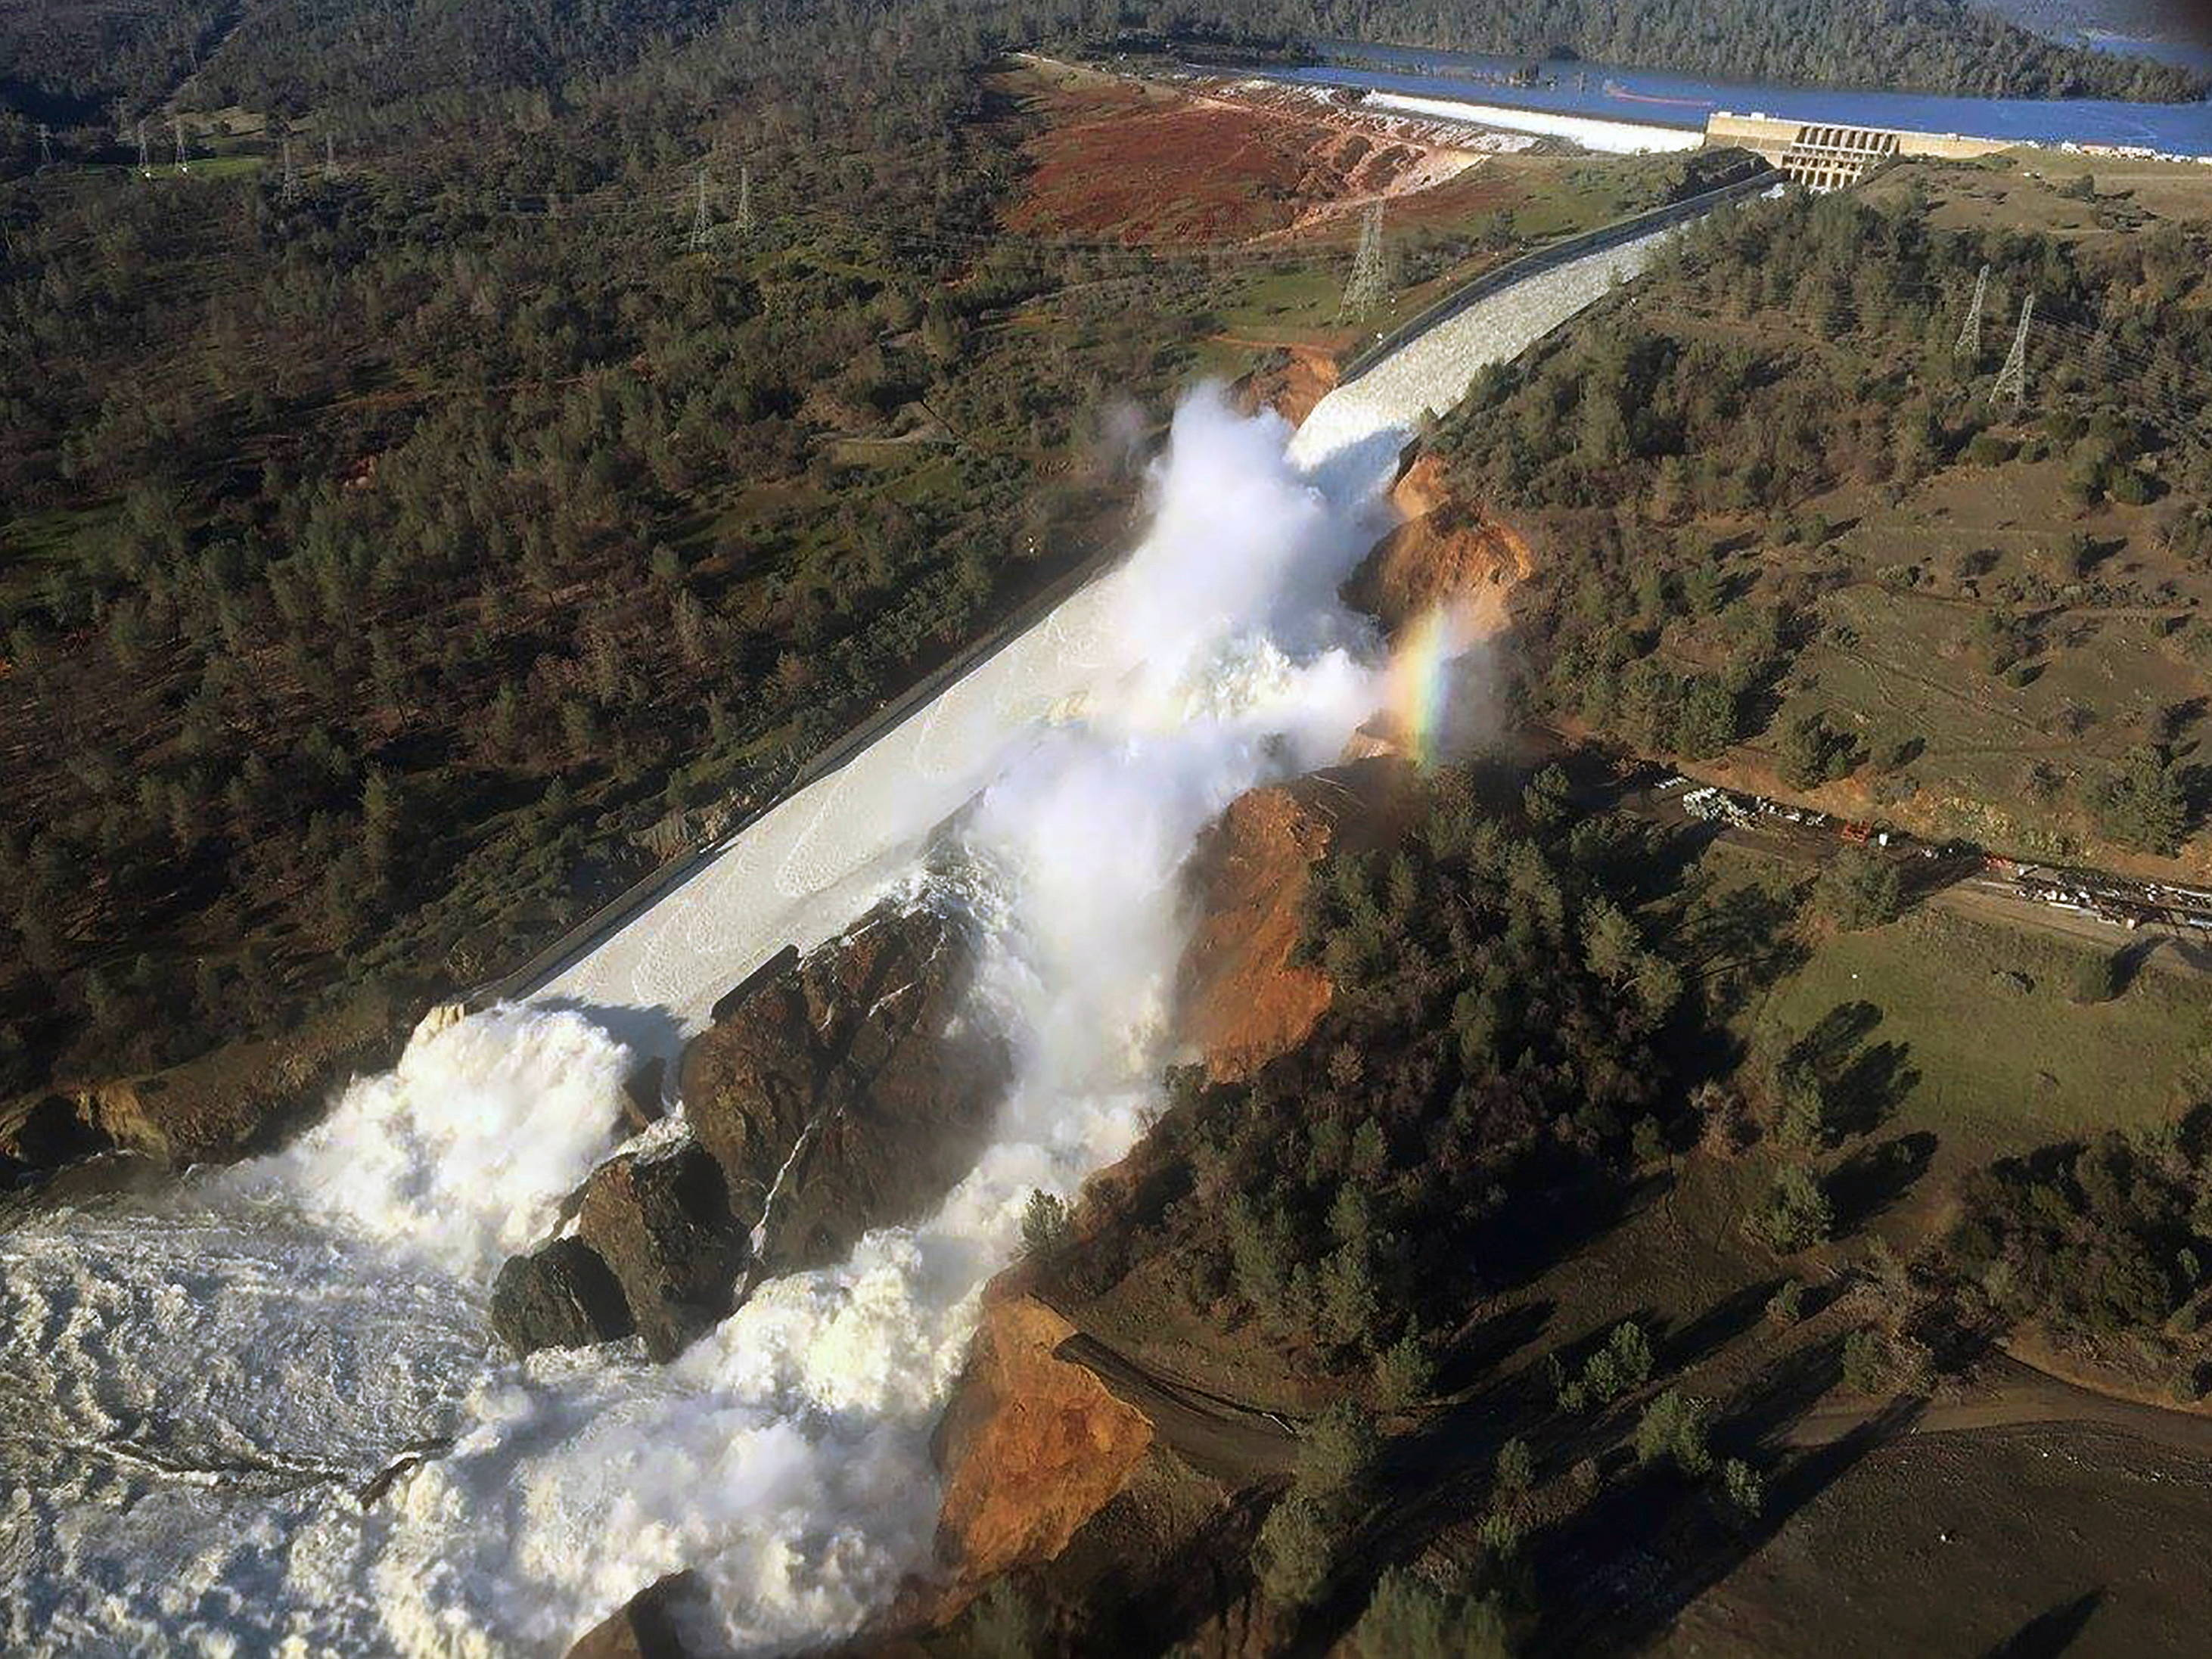 Oroville dam spillway overflow, 2017. Source: Wikimedia Commons.